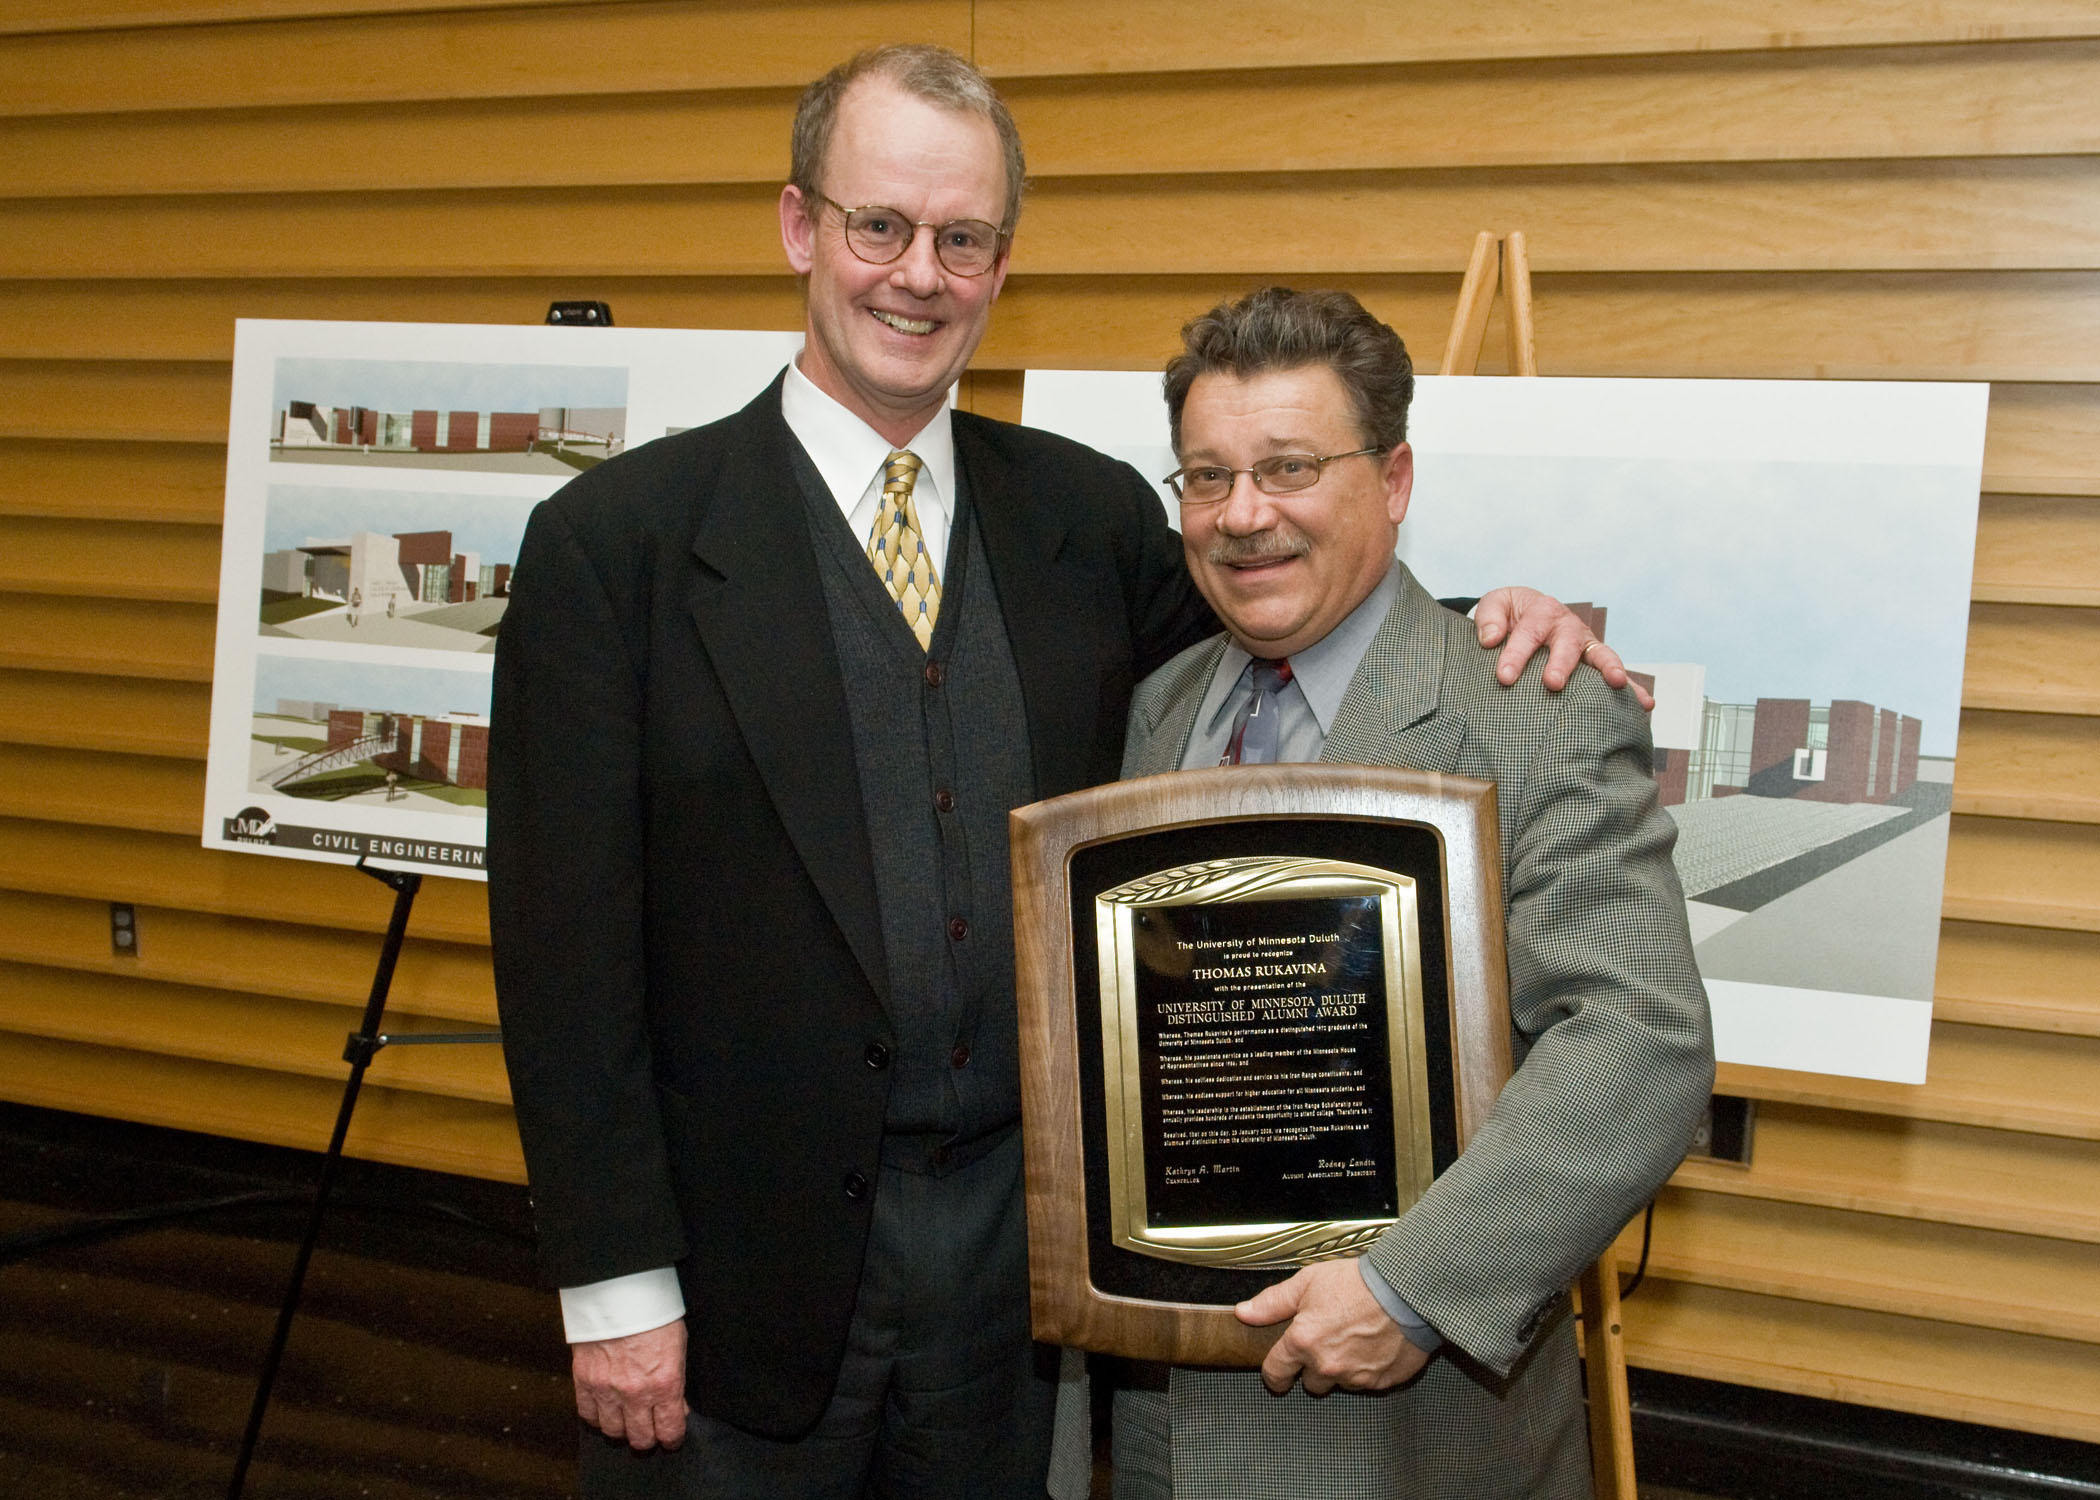 Two men pose for camera. Man on right holds a plaque.